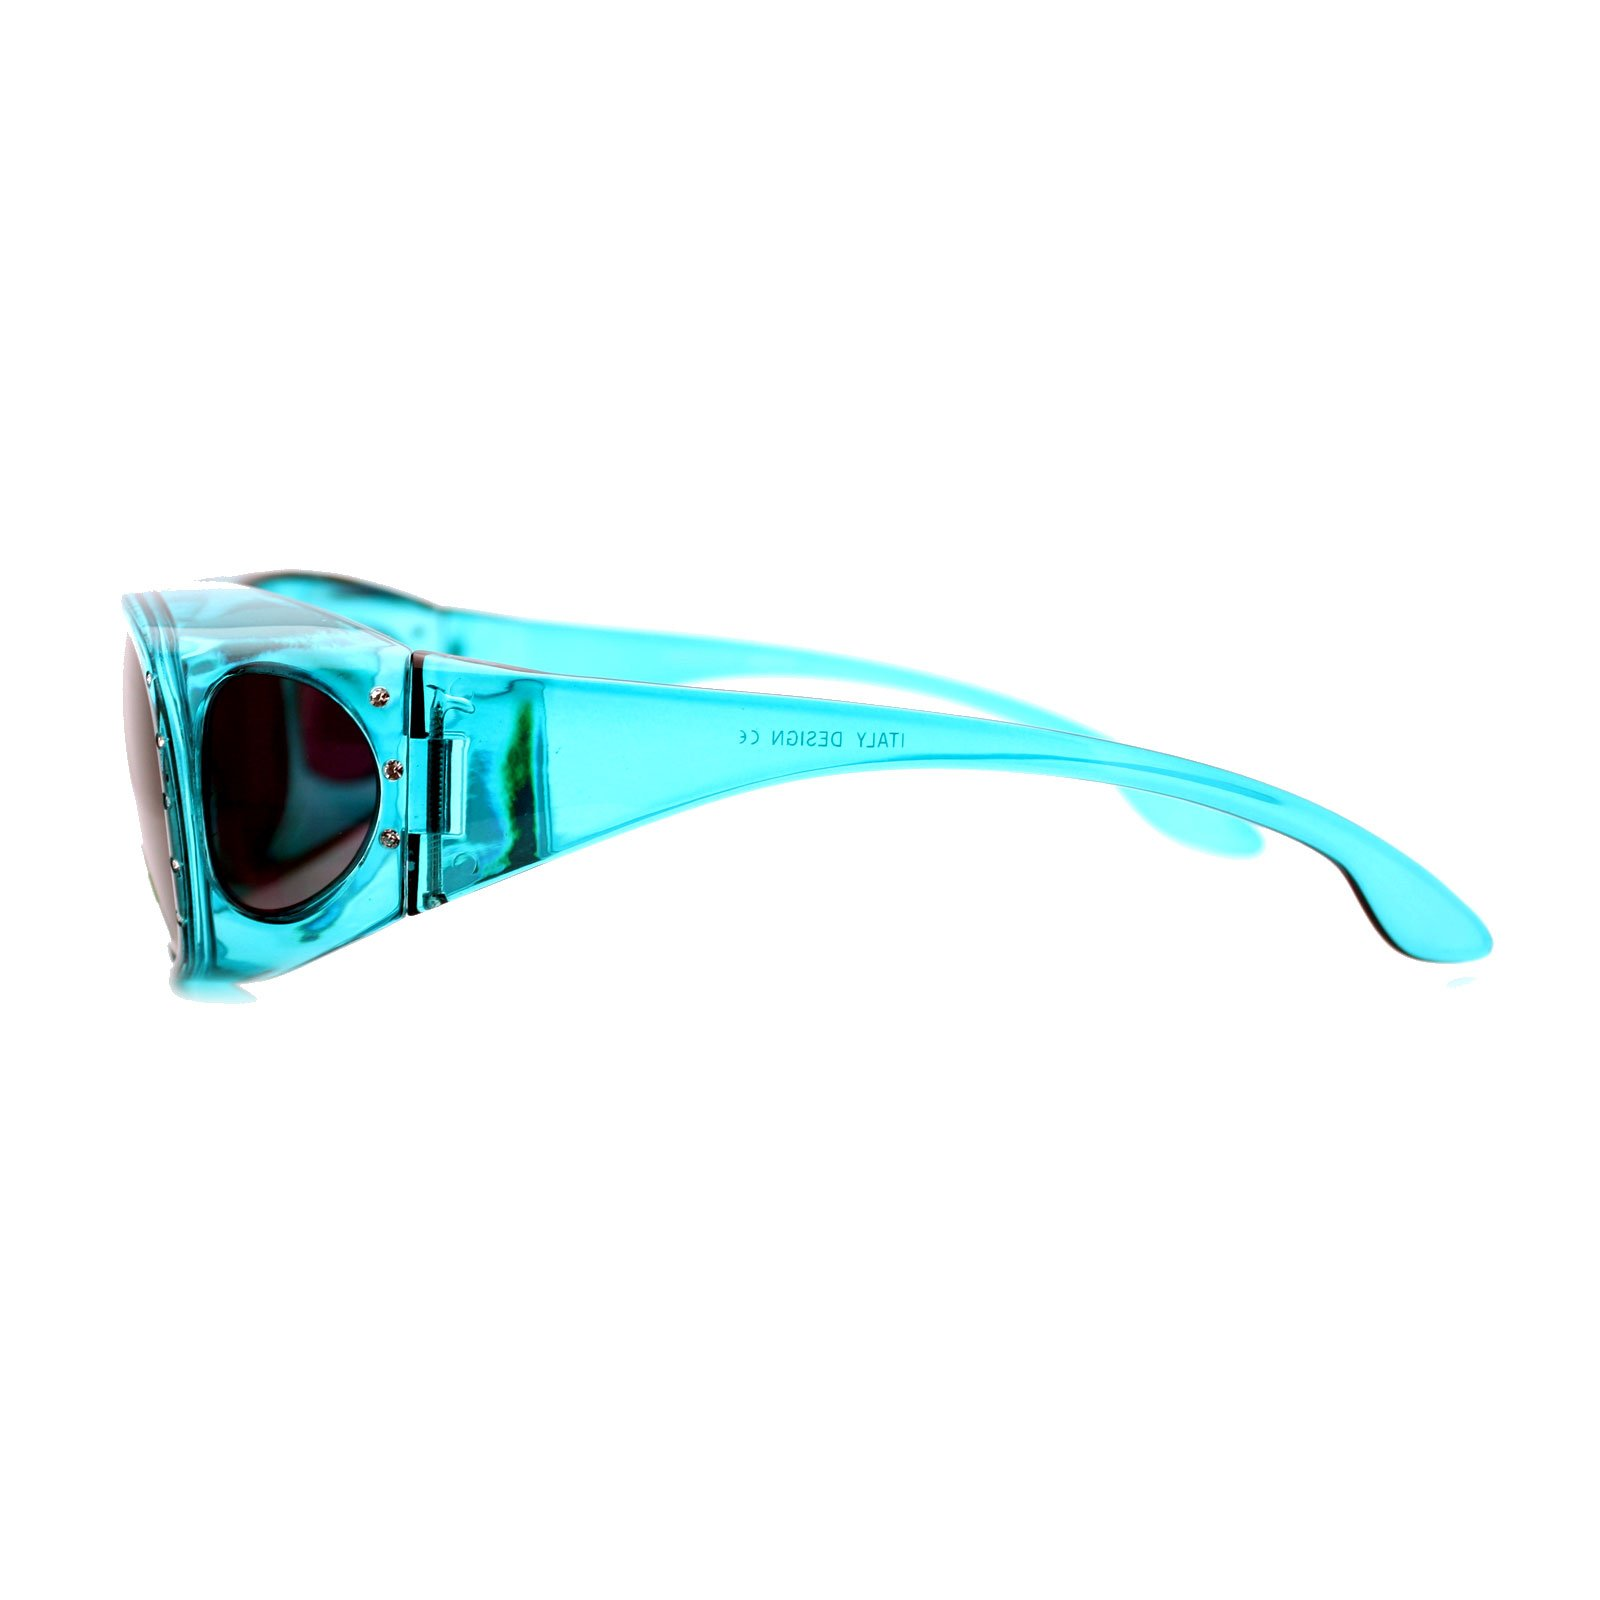 Womens Polarized Fit Over Glasses Rhinestone Sunglasses Oval Rectangular Teal by PASTL (Image #4)